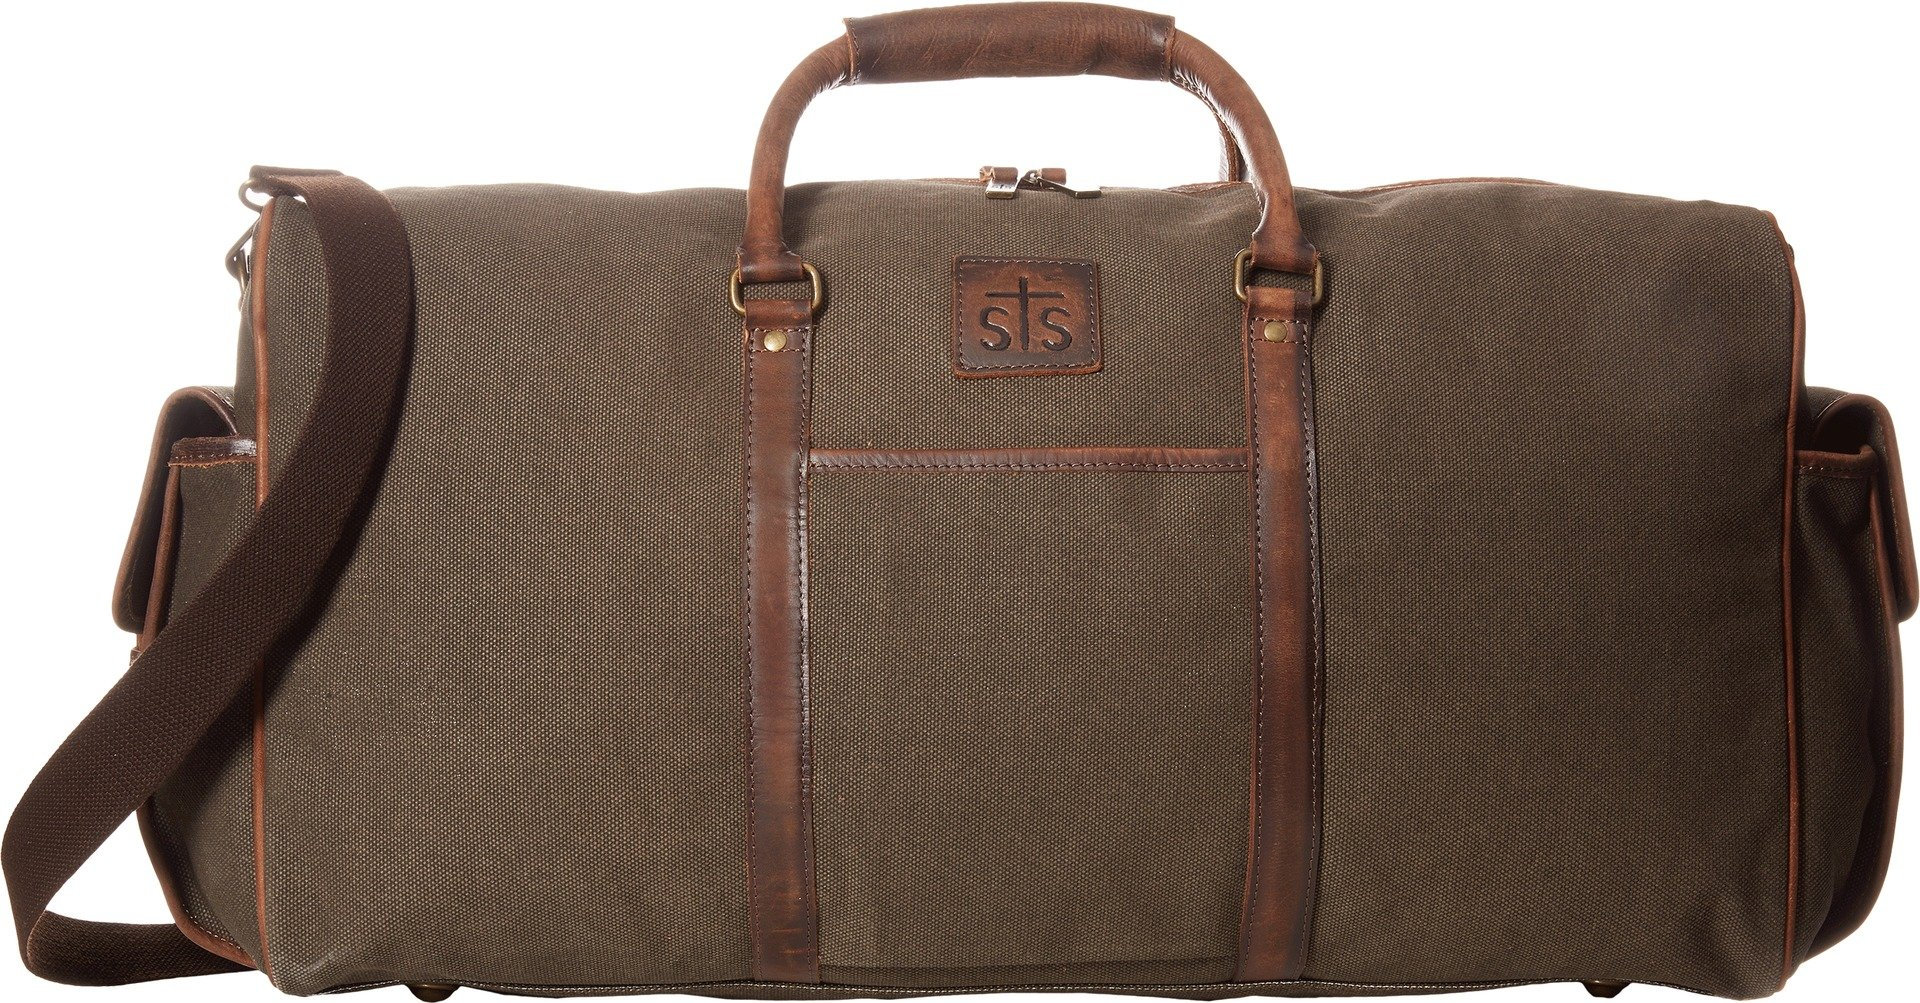 STS Ranchwear  Men's The Foreman Duffel Bag Dark Khaki Canvas/Leather One Size